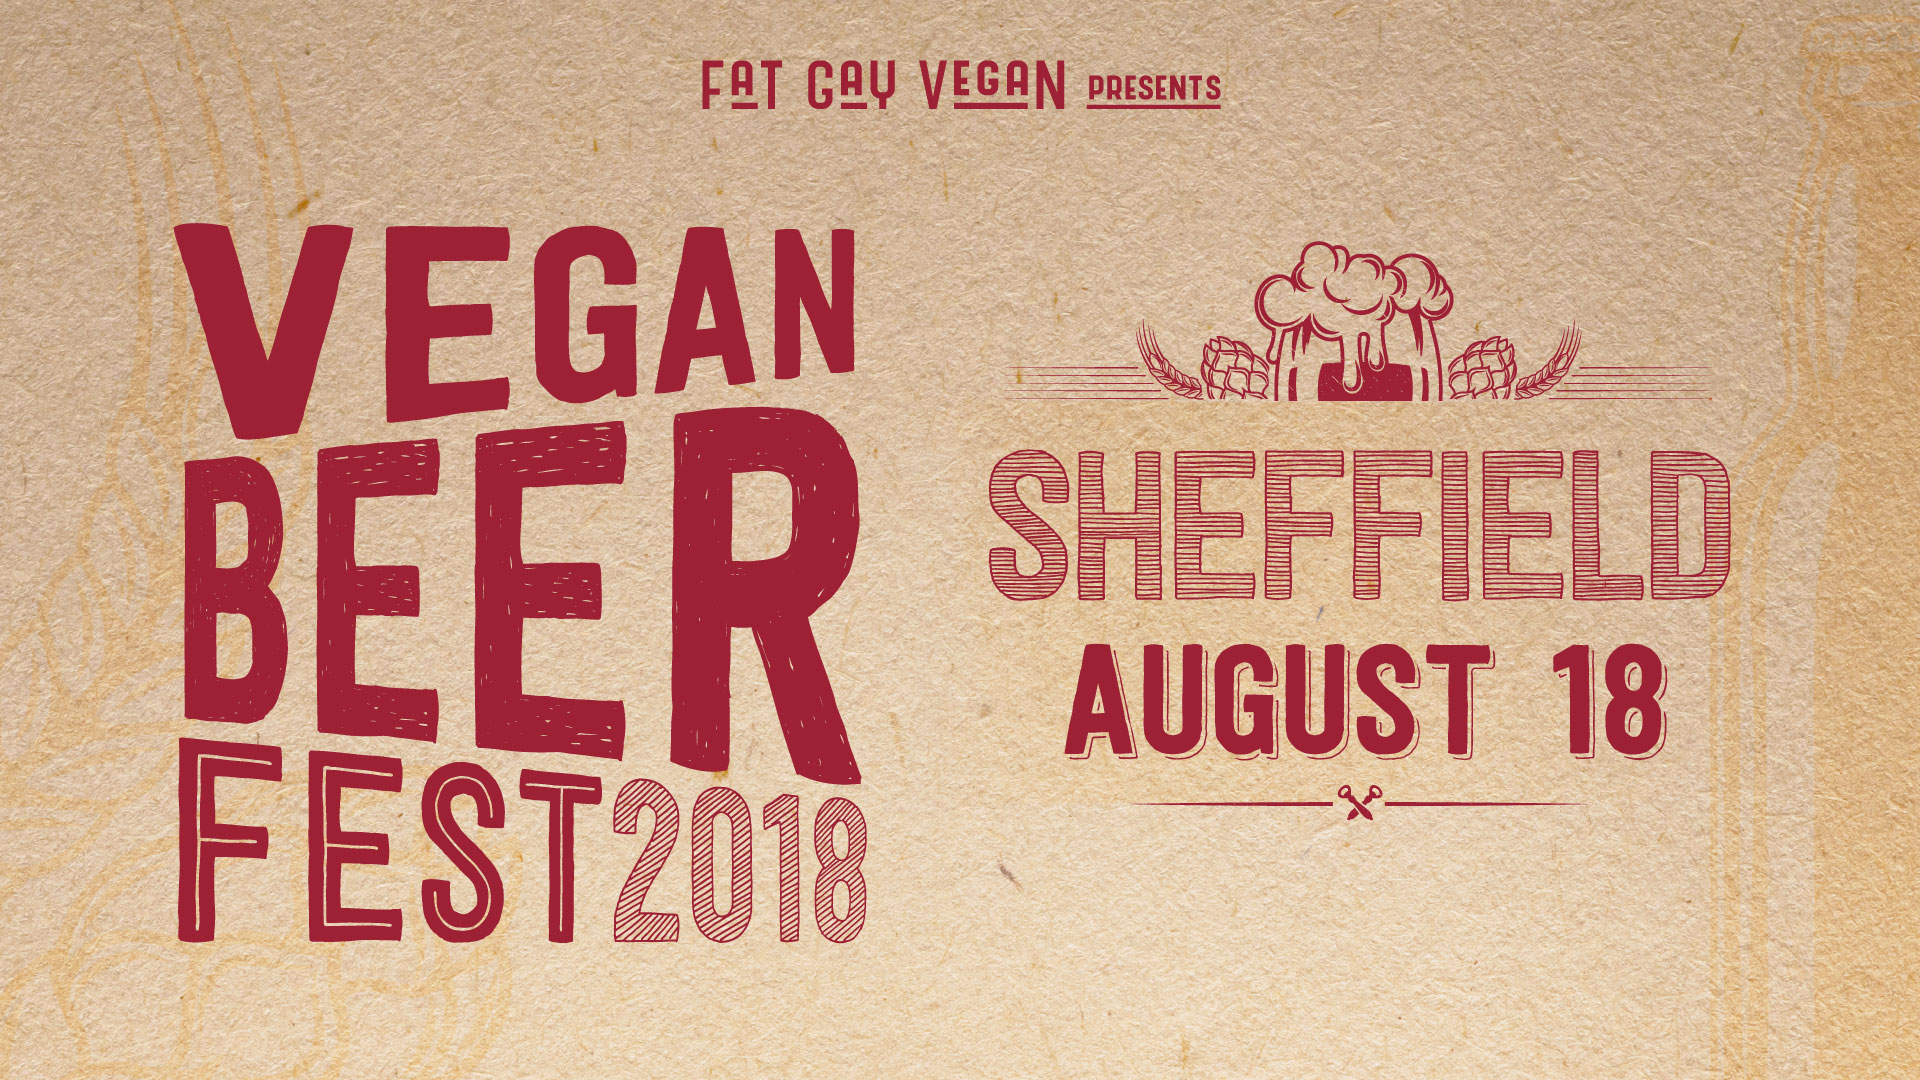 Sheffield Vegan Beer Fest